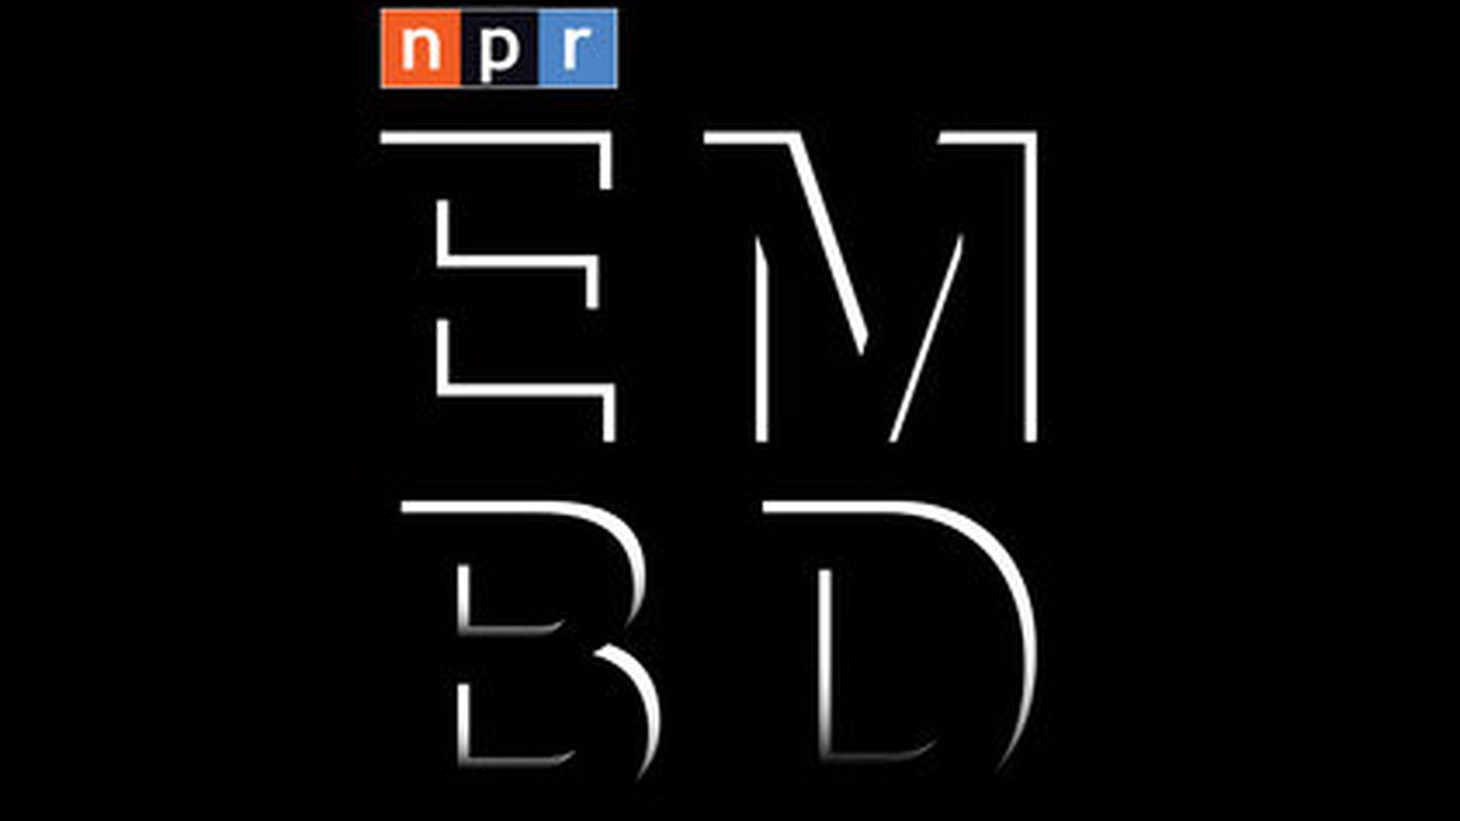 Podcasts are big right now, as big as things get in the audio world. Every media company from Buzzfeed to the New York Times is investing in them.  Serial  is credited with putting podcasts on the map in the culture beyond public radio, but some critics have worried that National Public Radio has been too slow to lead the pack.